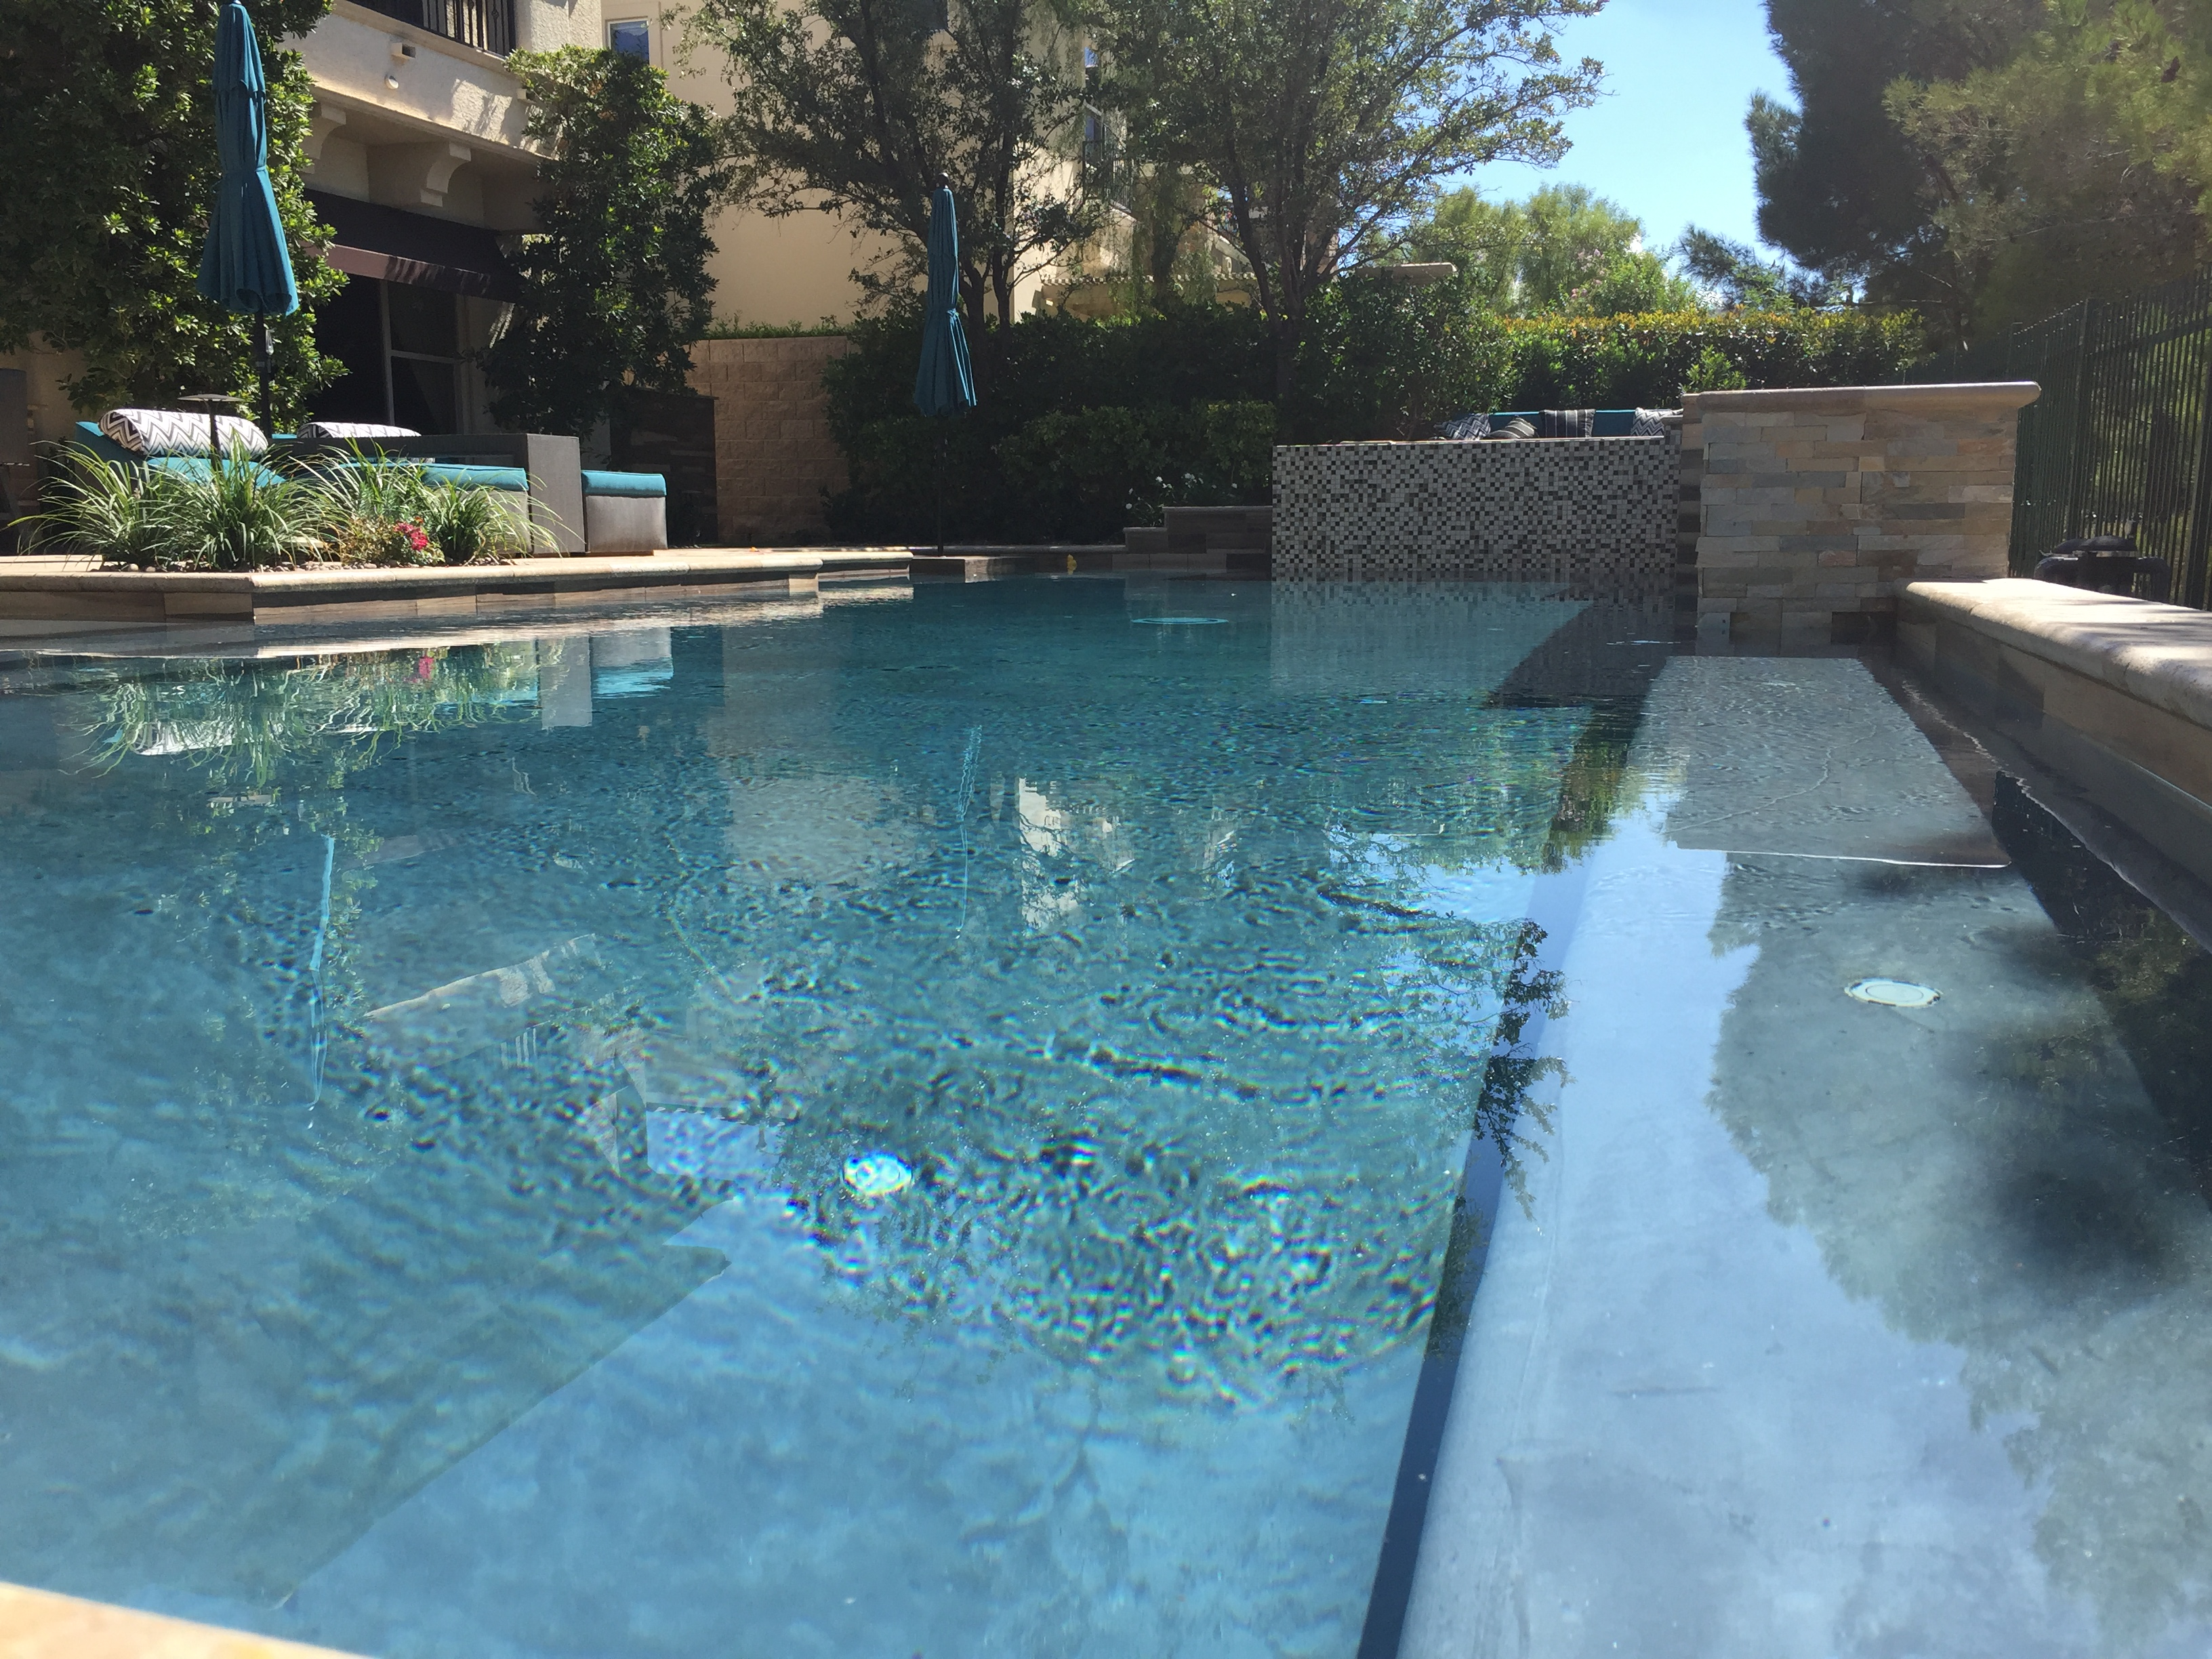 Las Vegas Pool Design Company